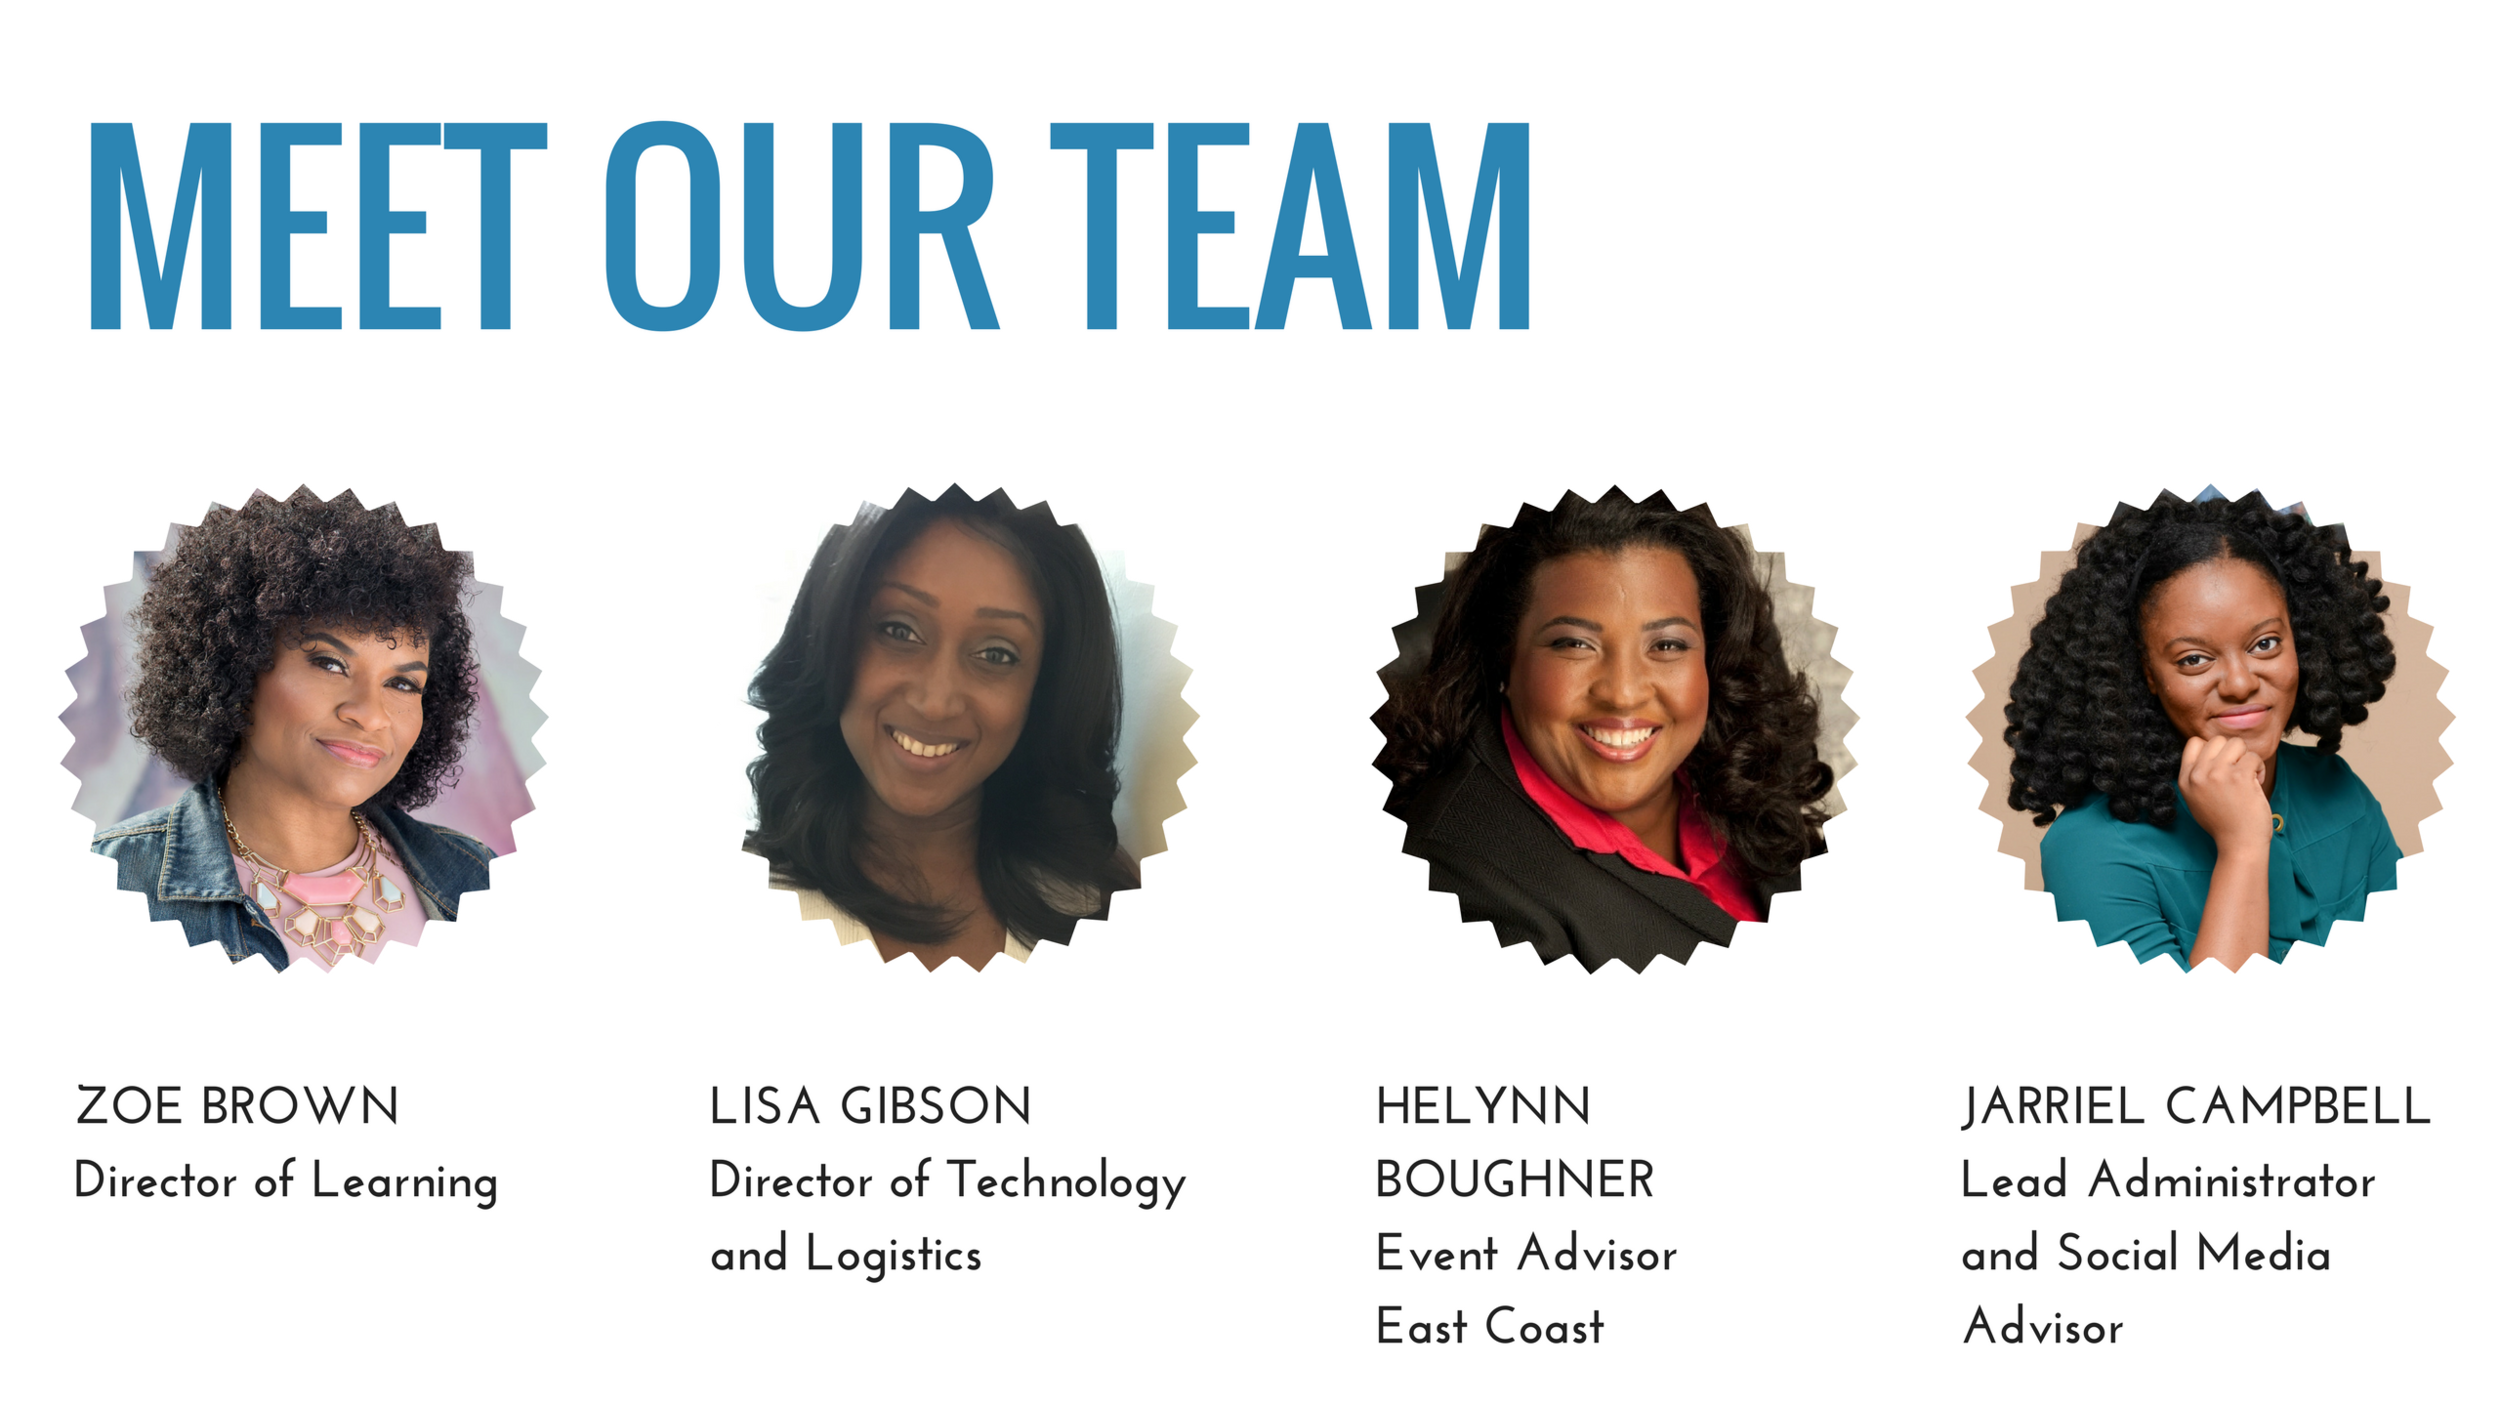 Meet Our Team for Website (1).png